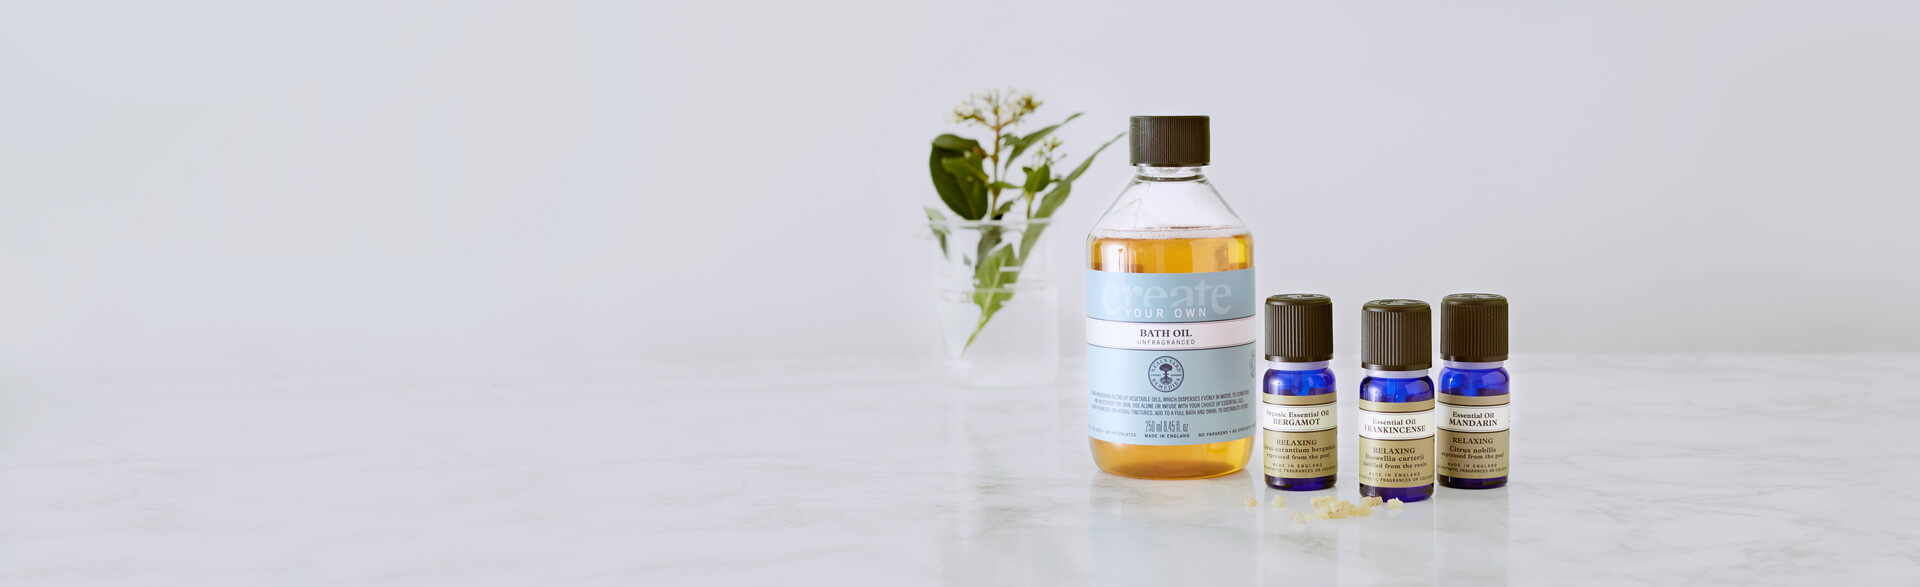 Learning to blend your own essential oils is a wonderful way to help create a space of relaxation that works specifically for you and those around you.